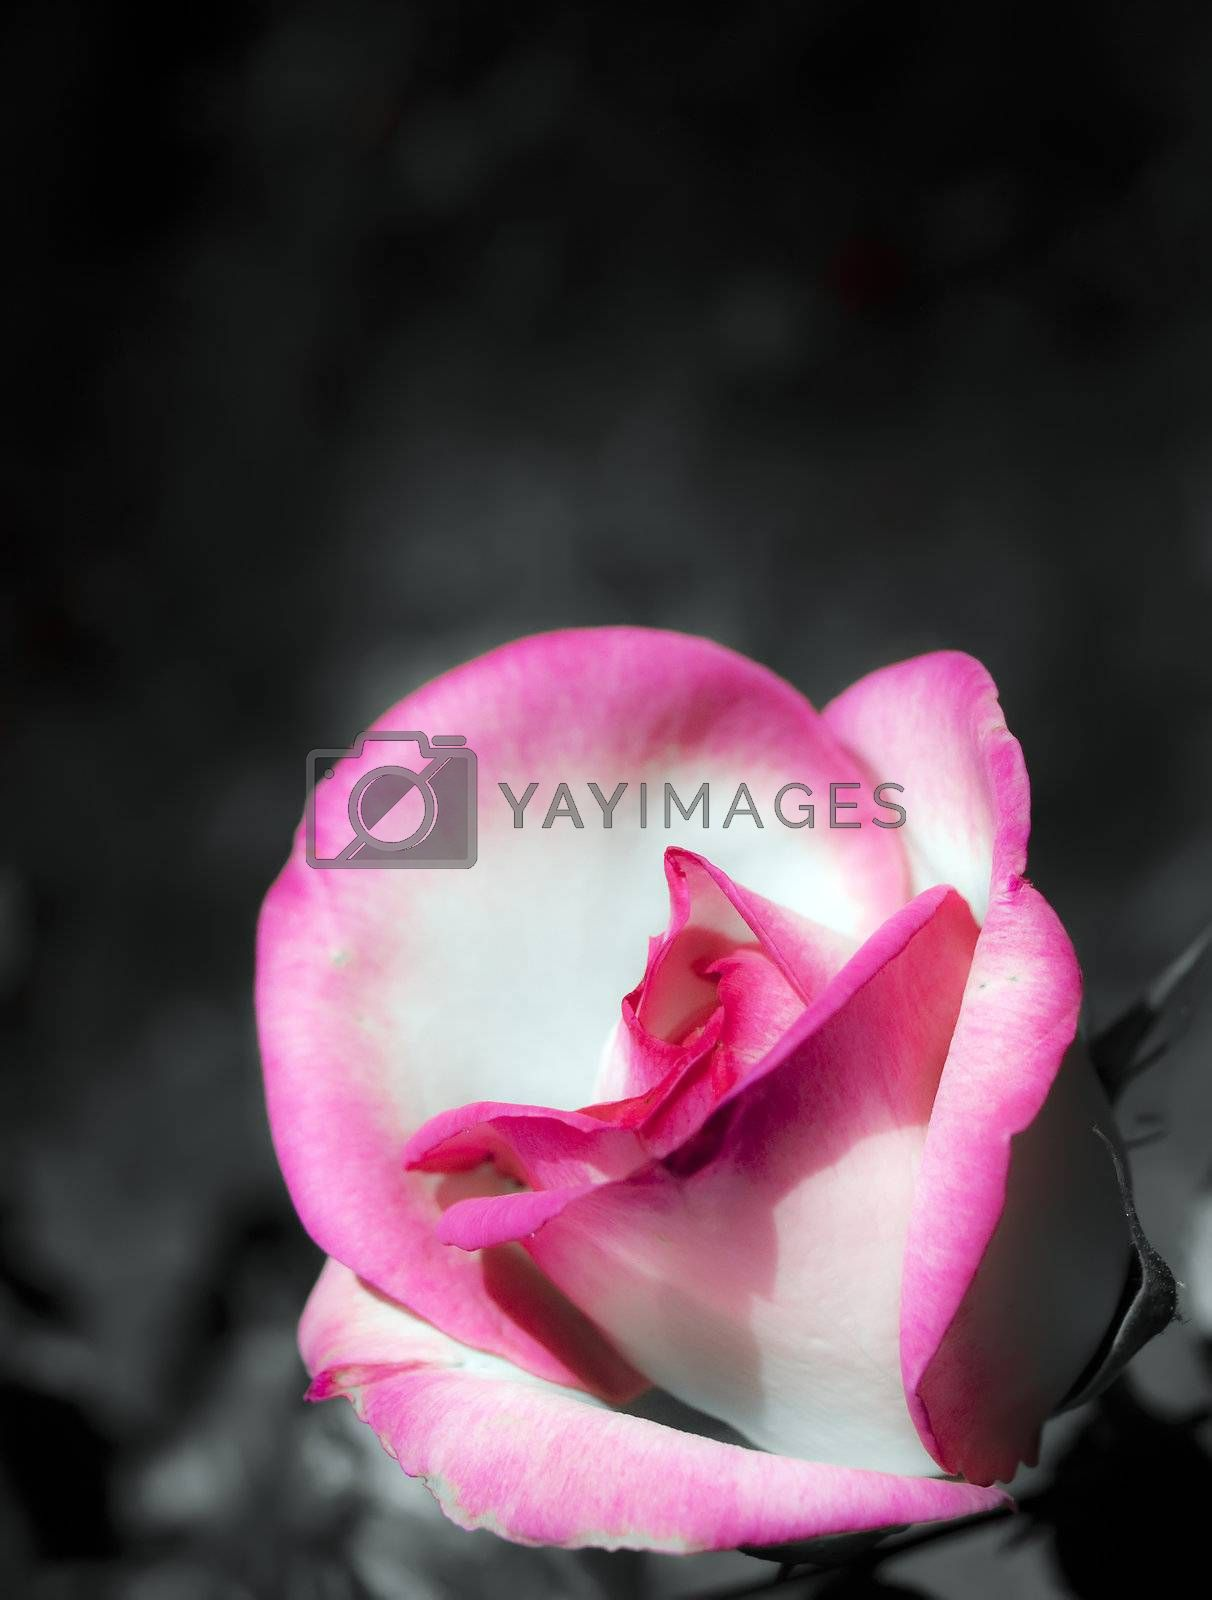 A beautiful close up of a rose over dark background